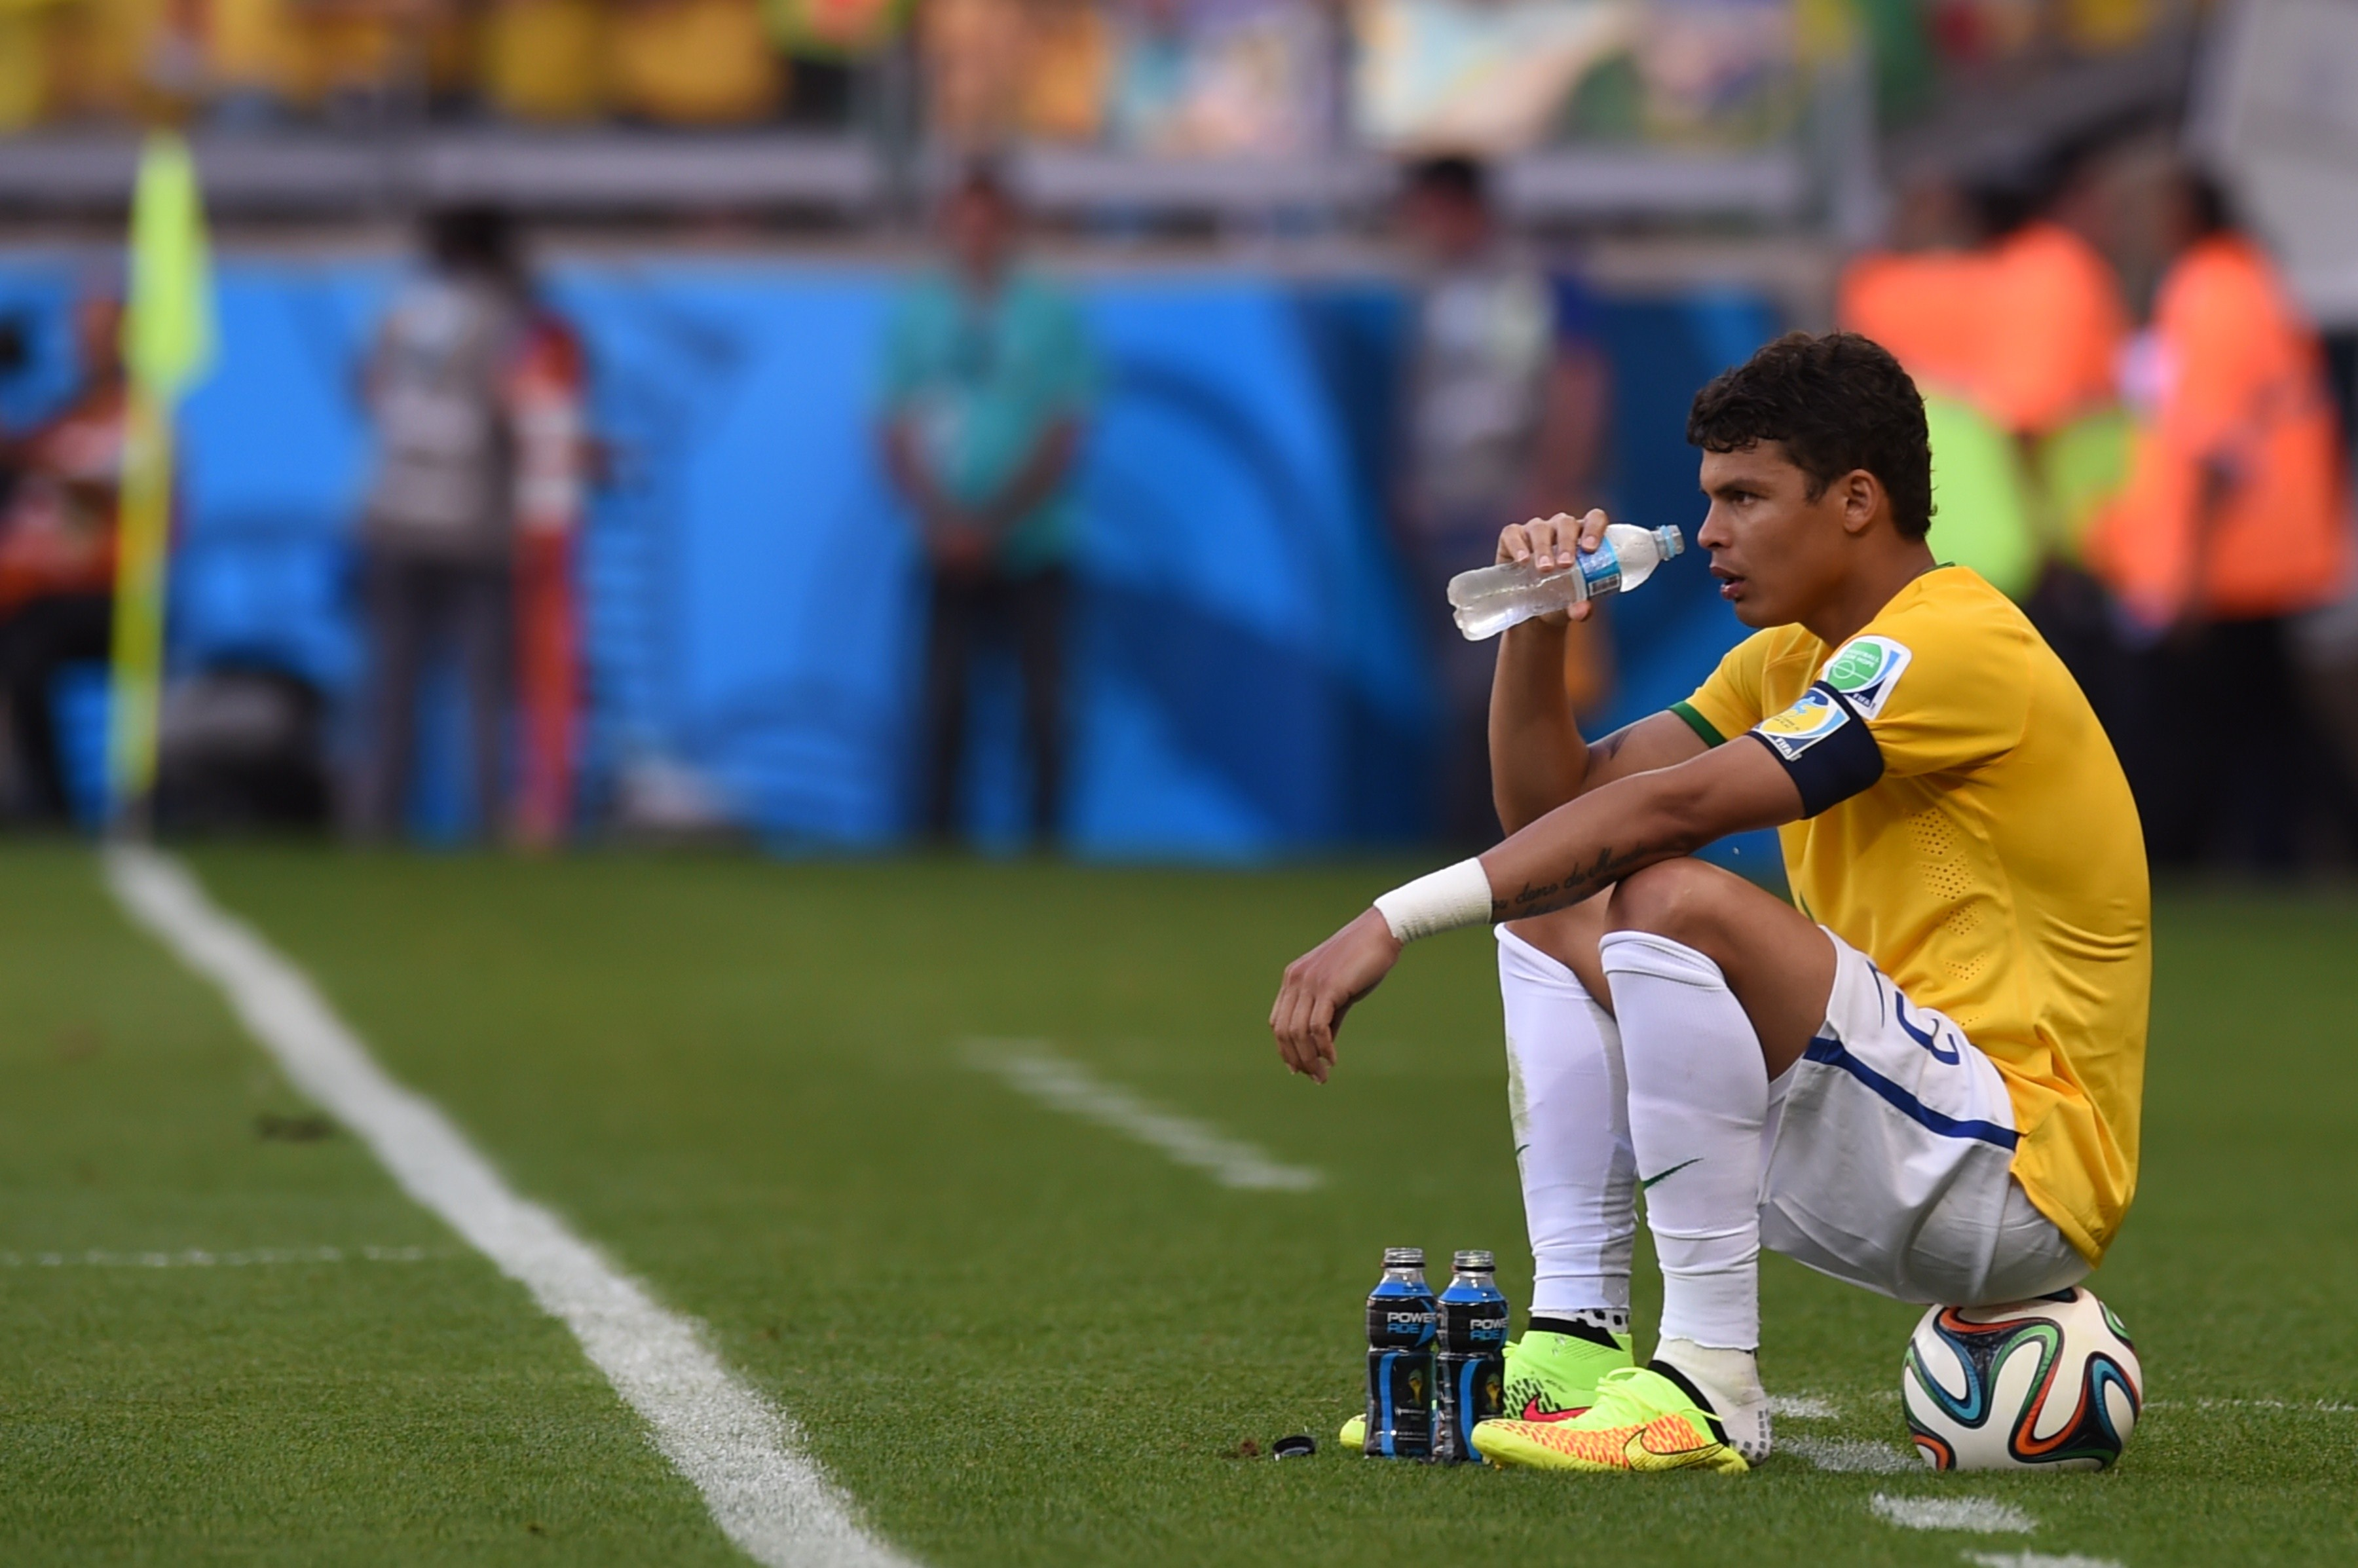 Thiago Silva Football Soccer Player Mobile Desktop Background Download Hd Free Drinking Water Photos